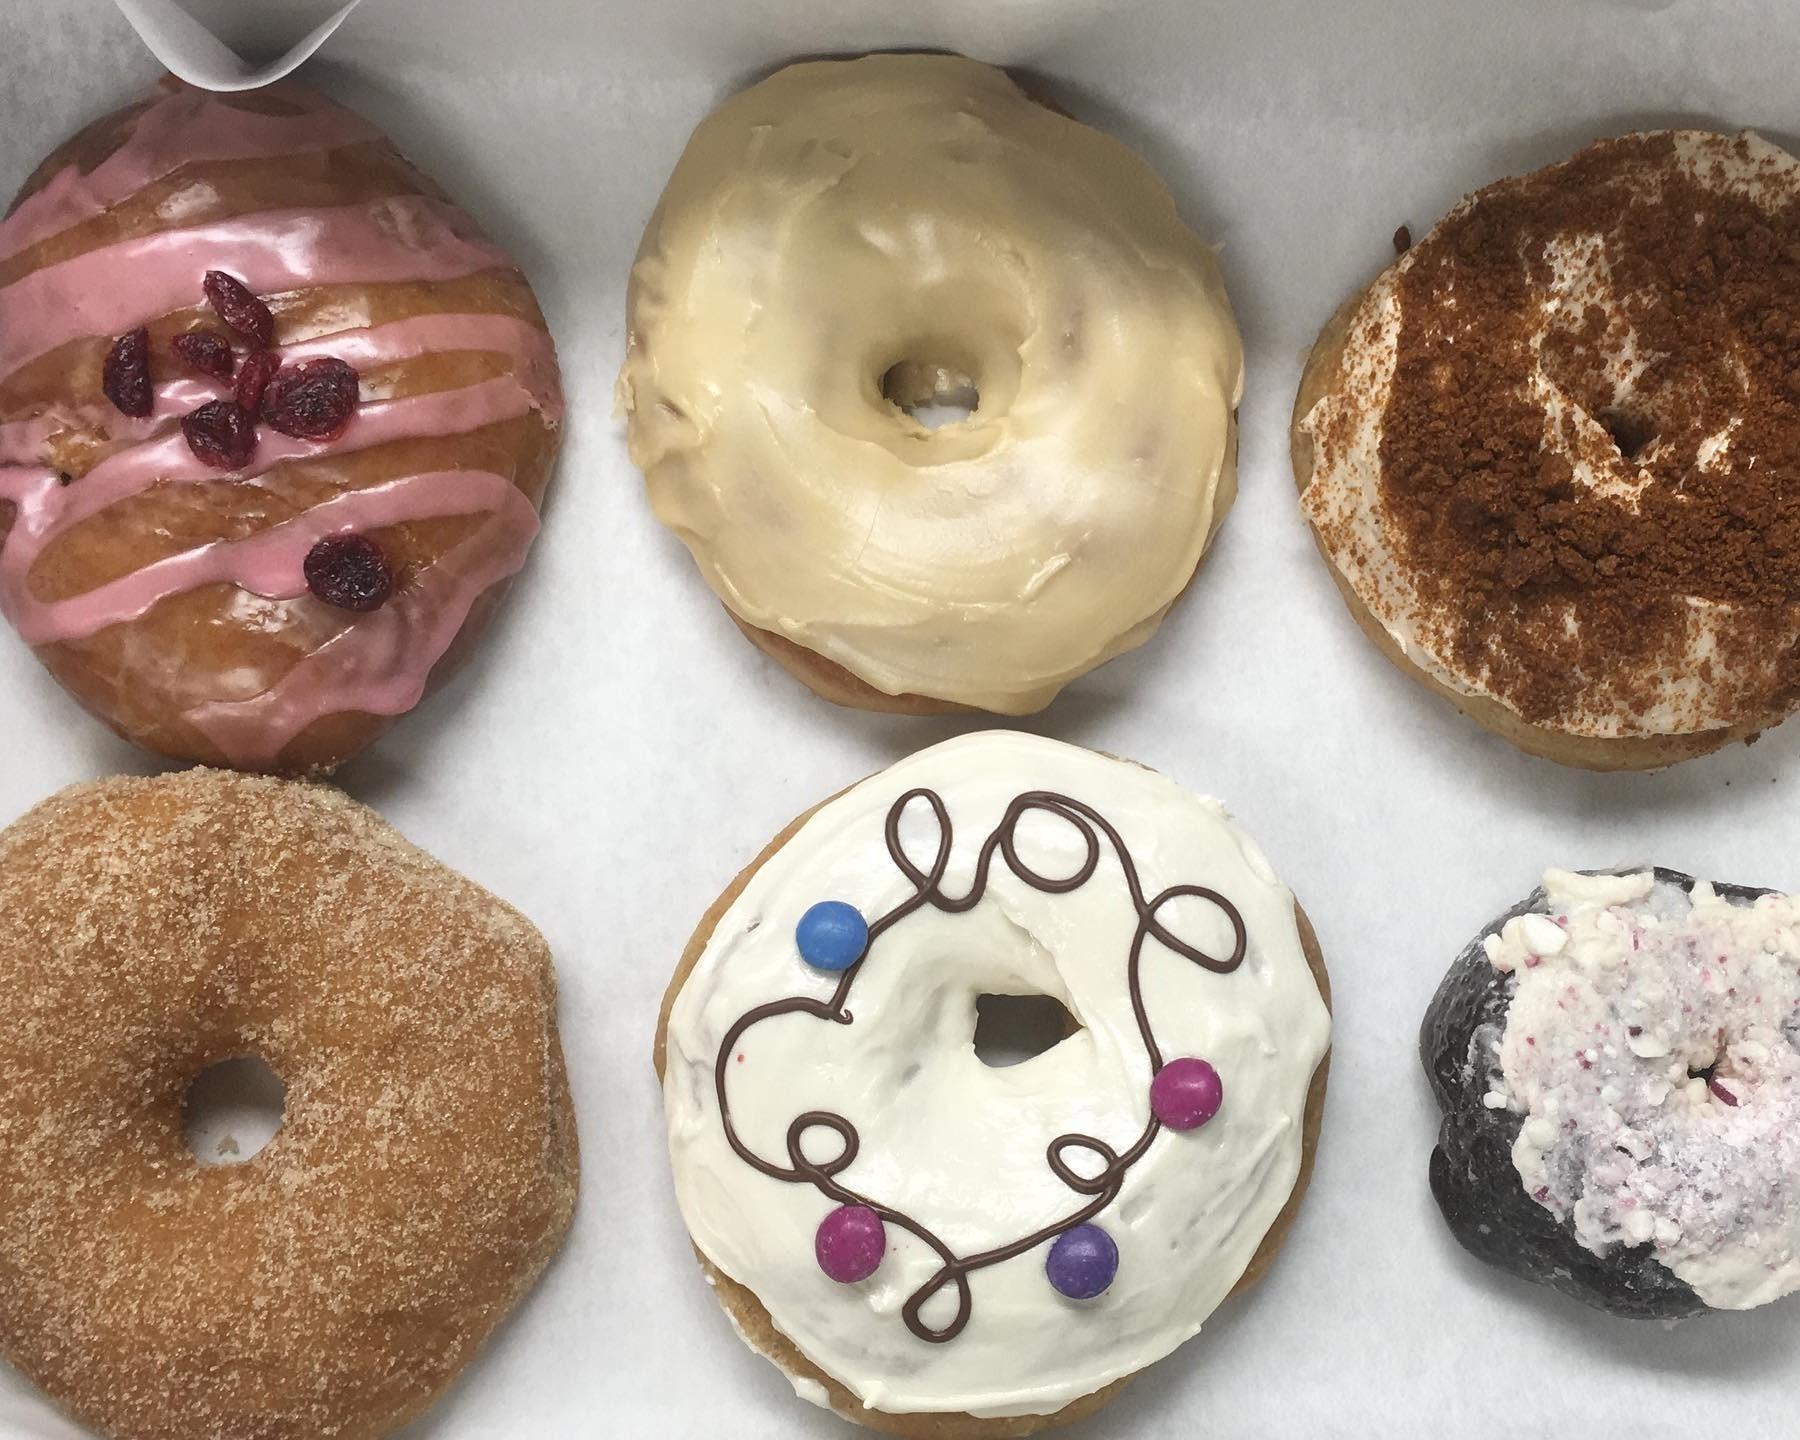 A variety of vegan donuts from Plant Joy in Windsor, Ontario.